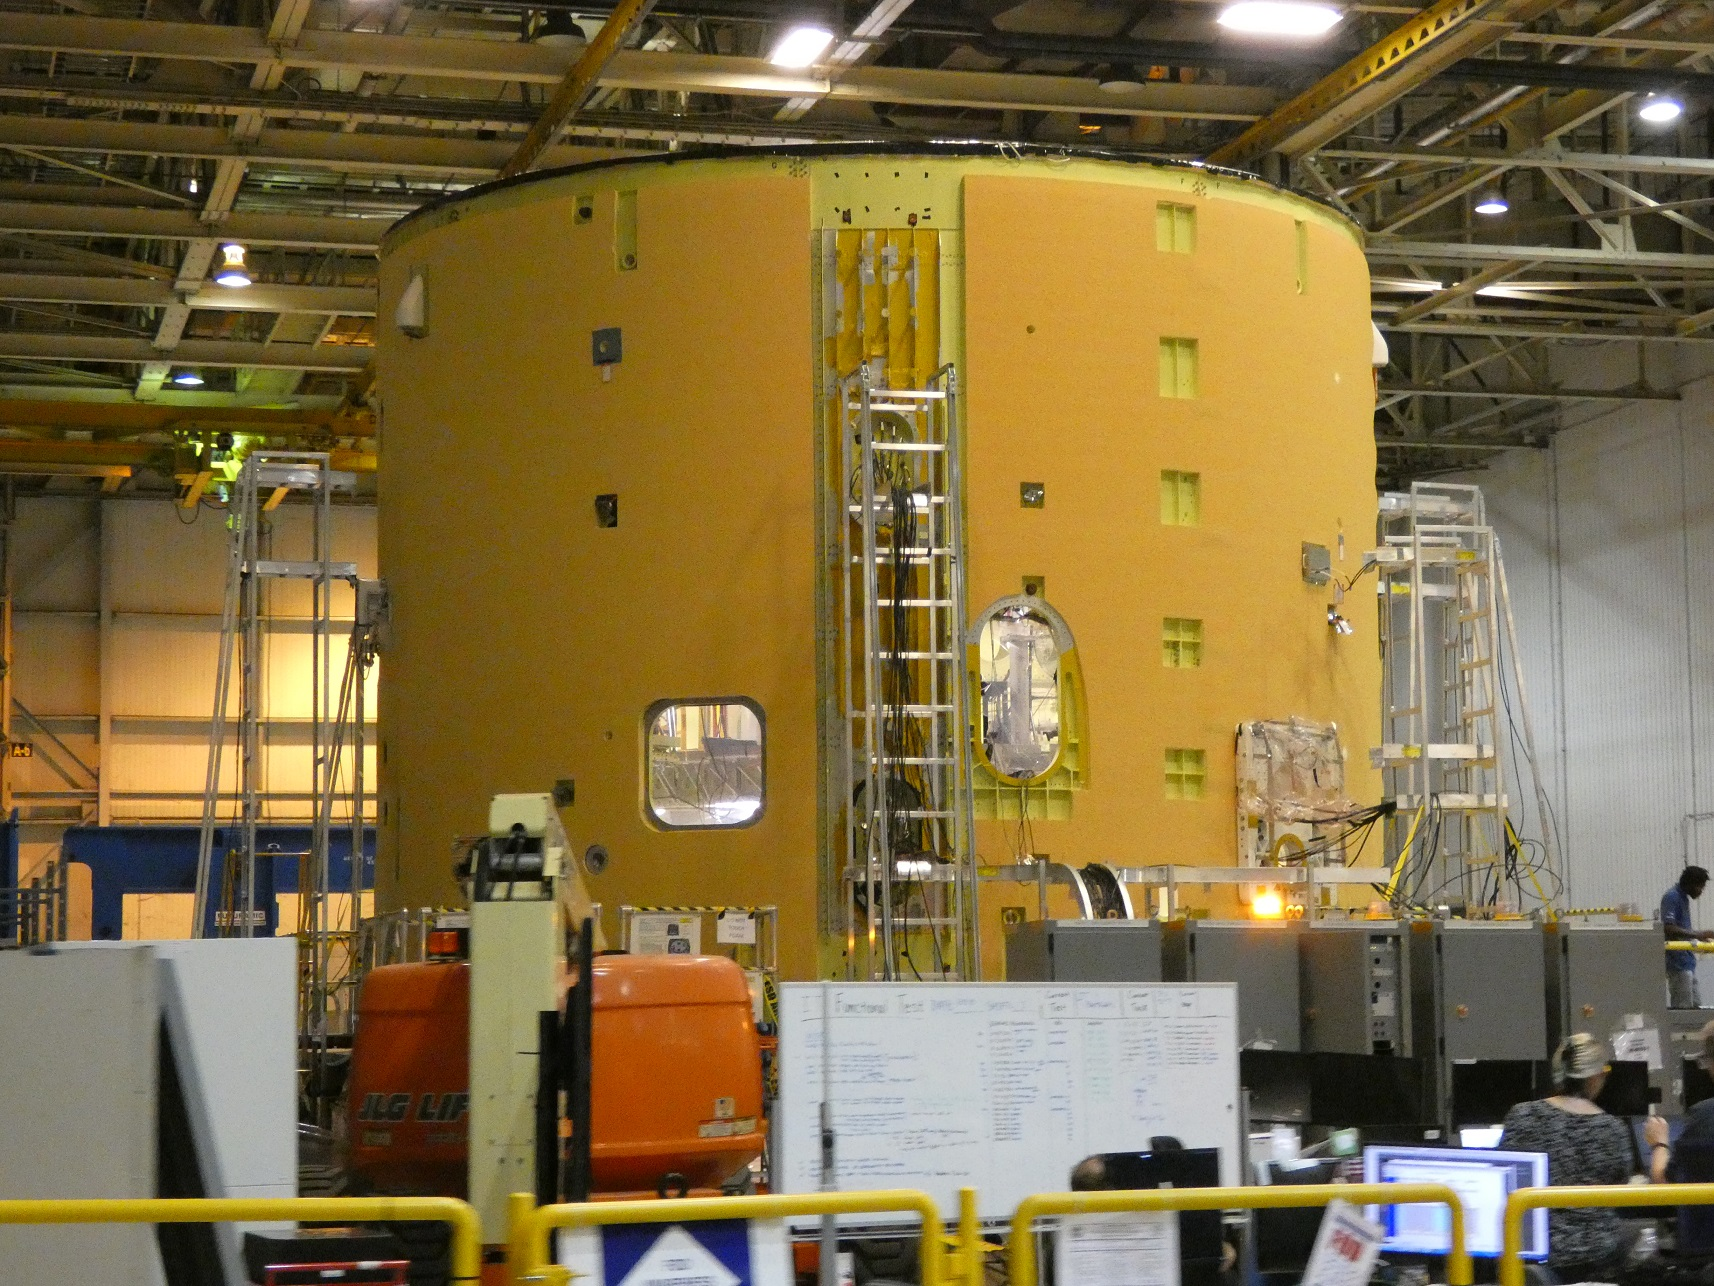 Boeing Nasa Managing Sls Core Stage Hardware Traffic Ahead Of First Wire Harness Z Side The Cs 1 Intertank At Maf August 13 Credit Philip Sloss For Nsf L2